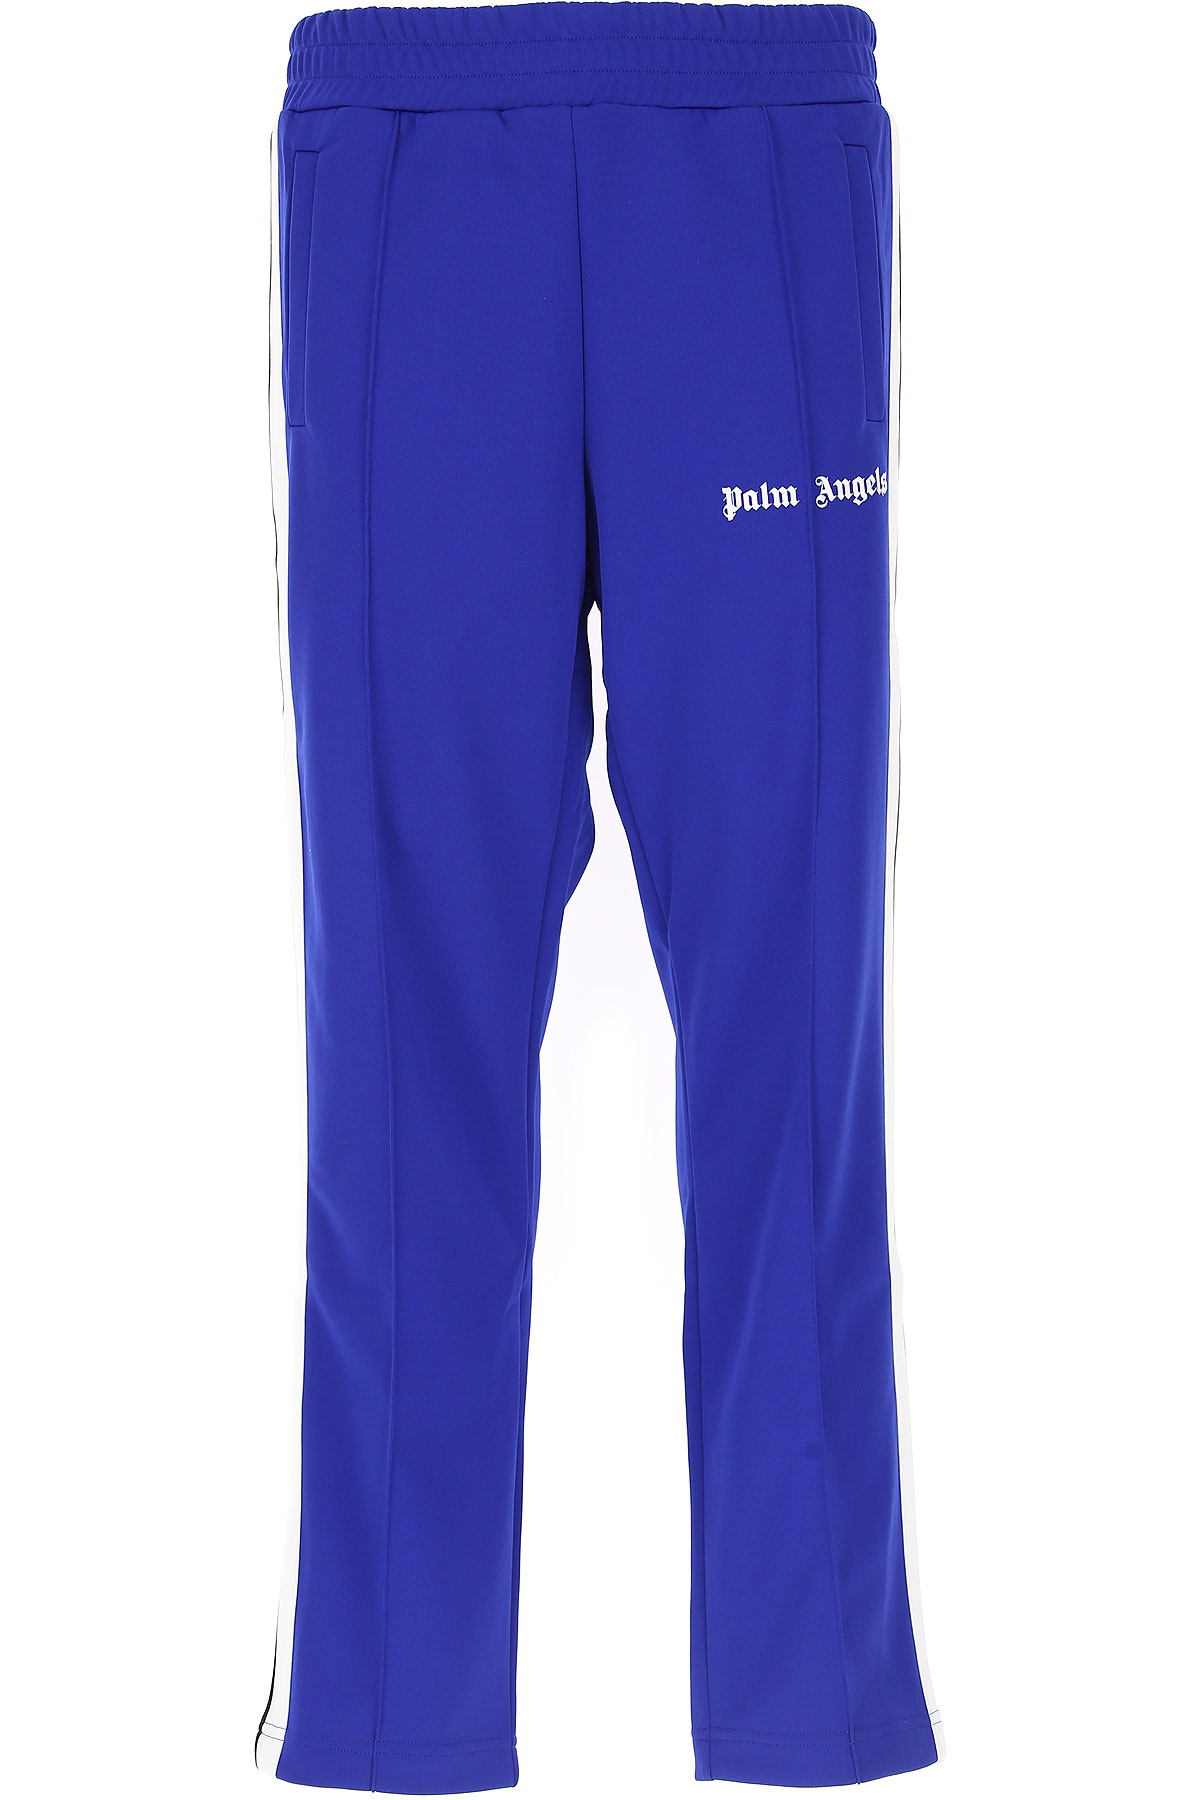 Image of Palm Angels Pants for Men, Electric Blue, polyester, 2017, L M S